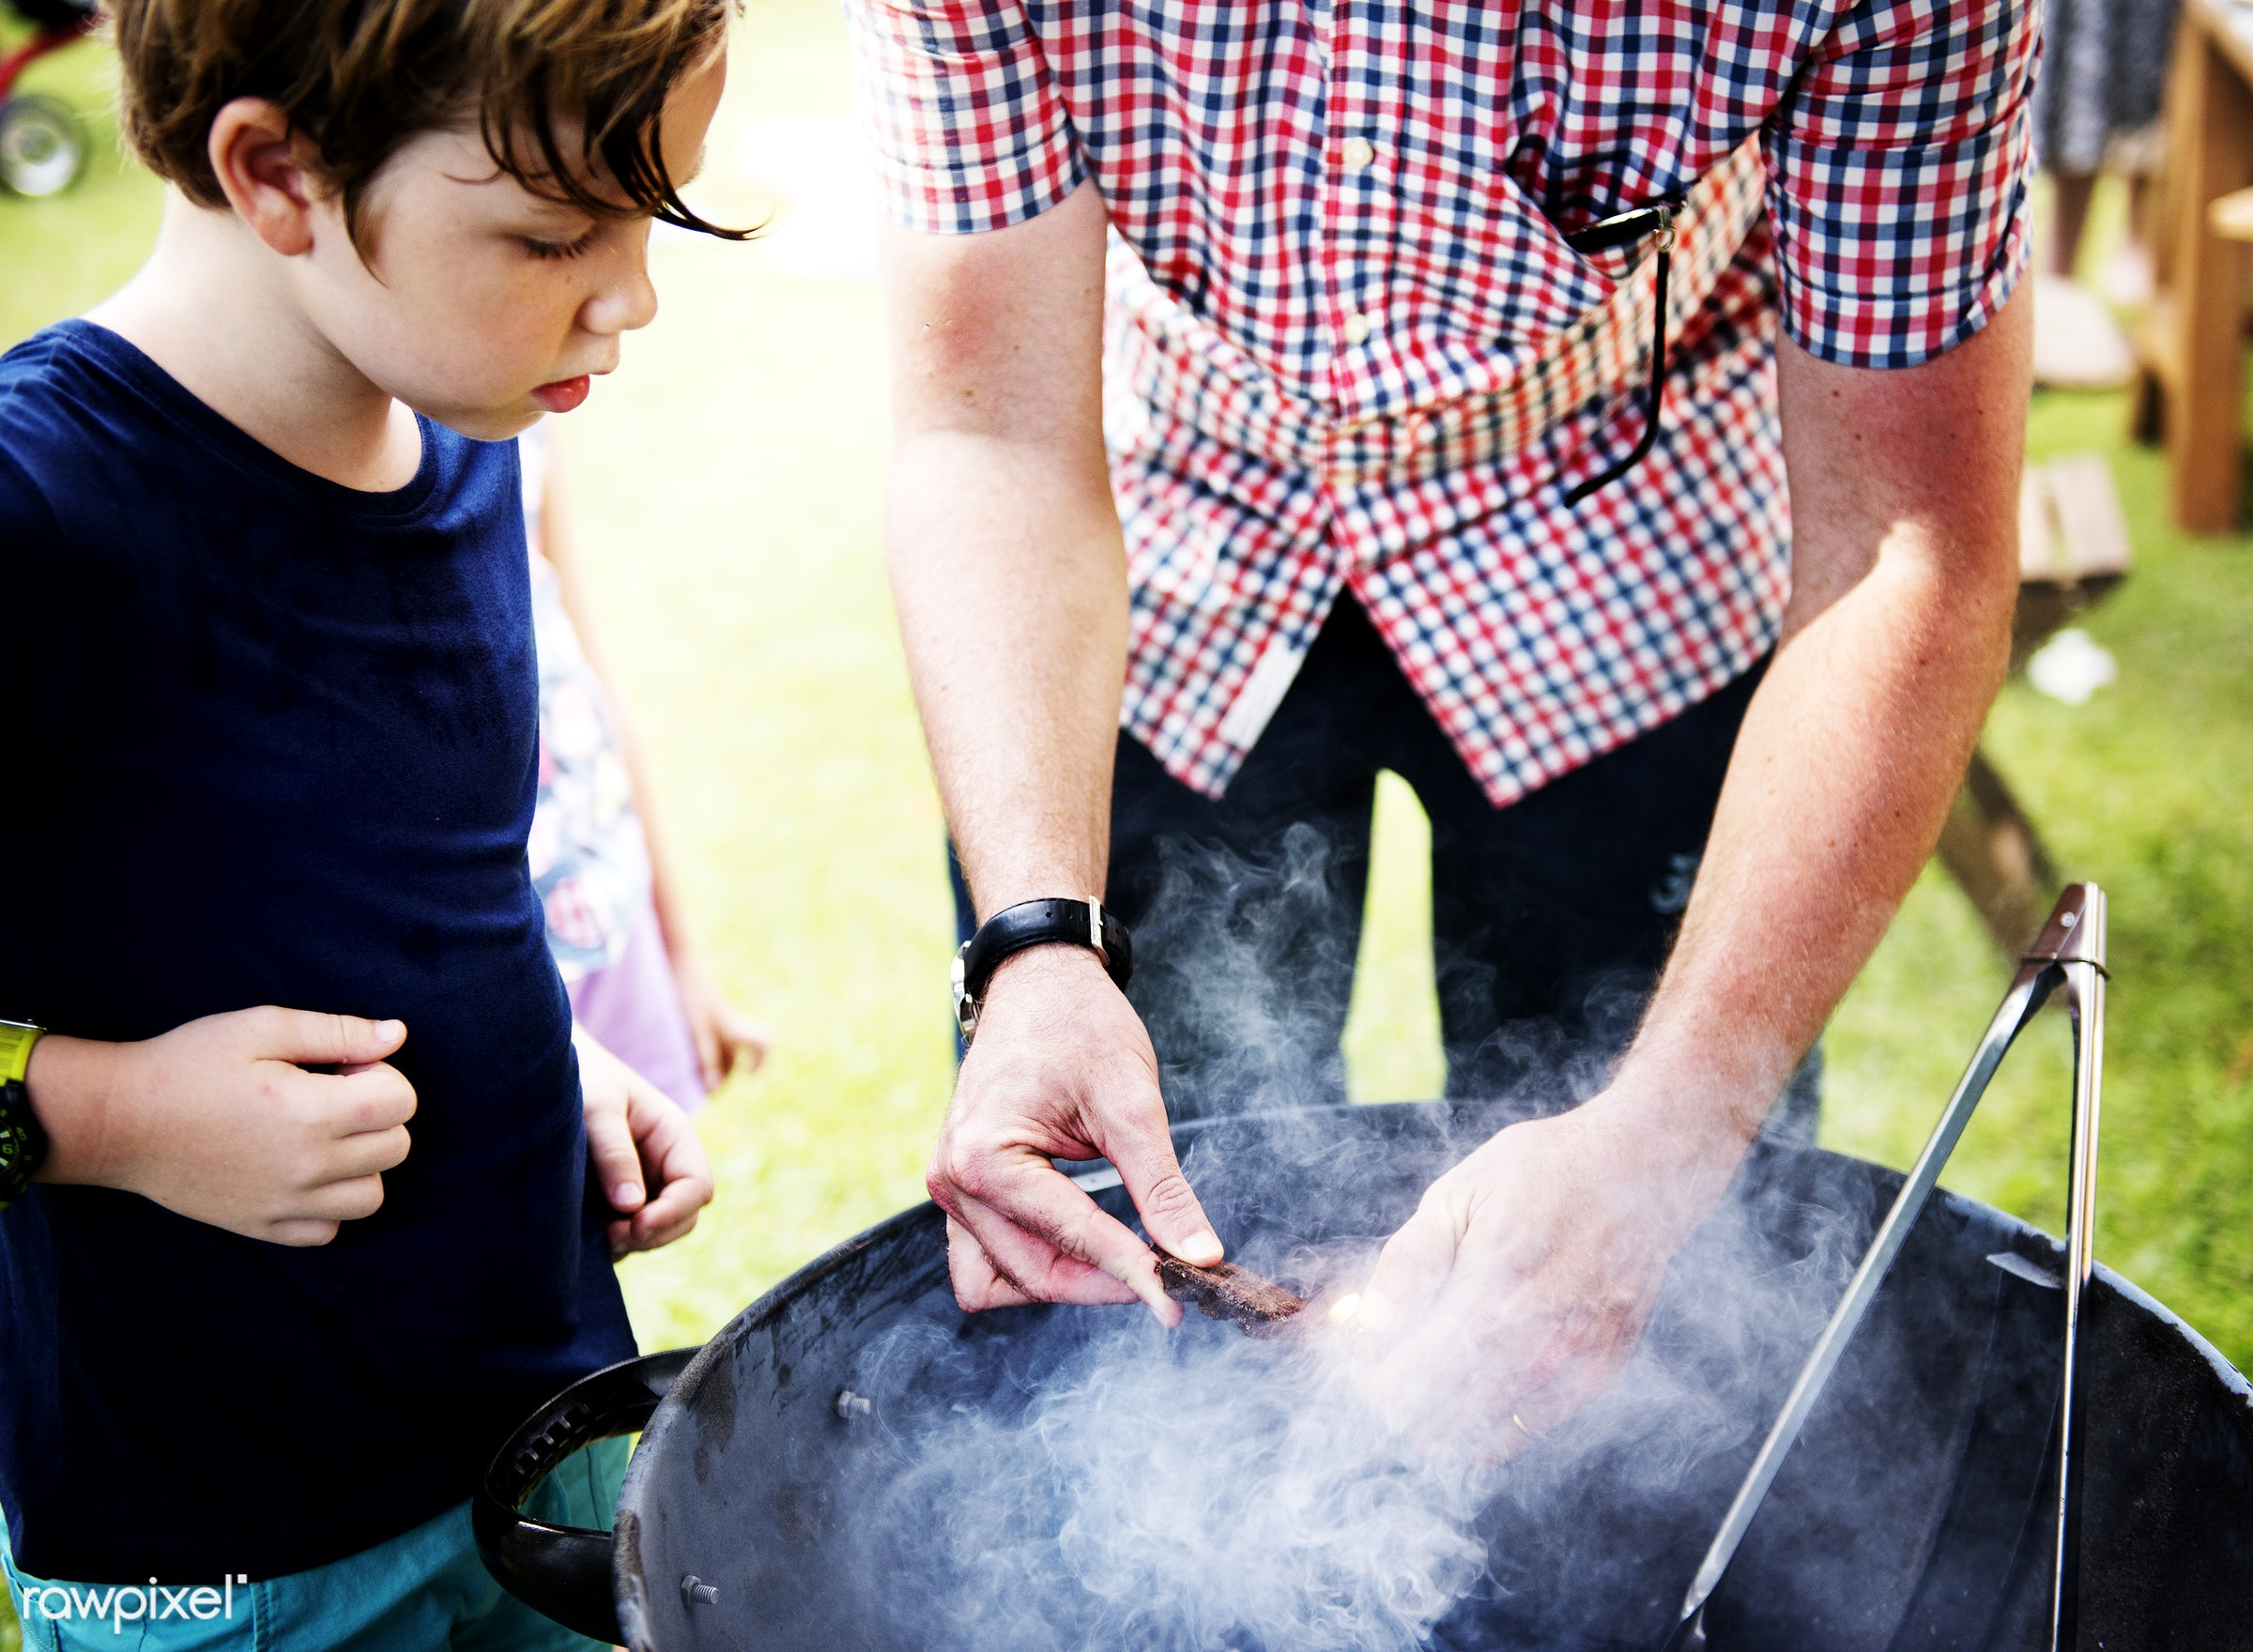 Closeup of father preparing charcoal grill for barbecue party with son - barbecue, activity, backyard, boy, charcoal, child...